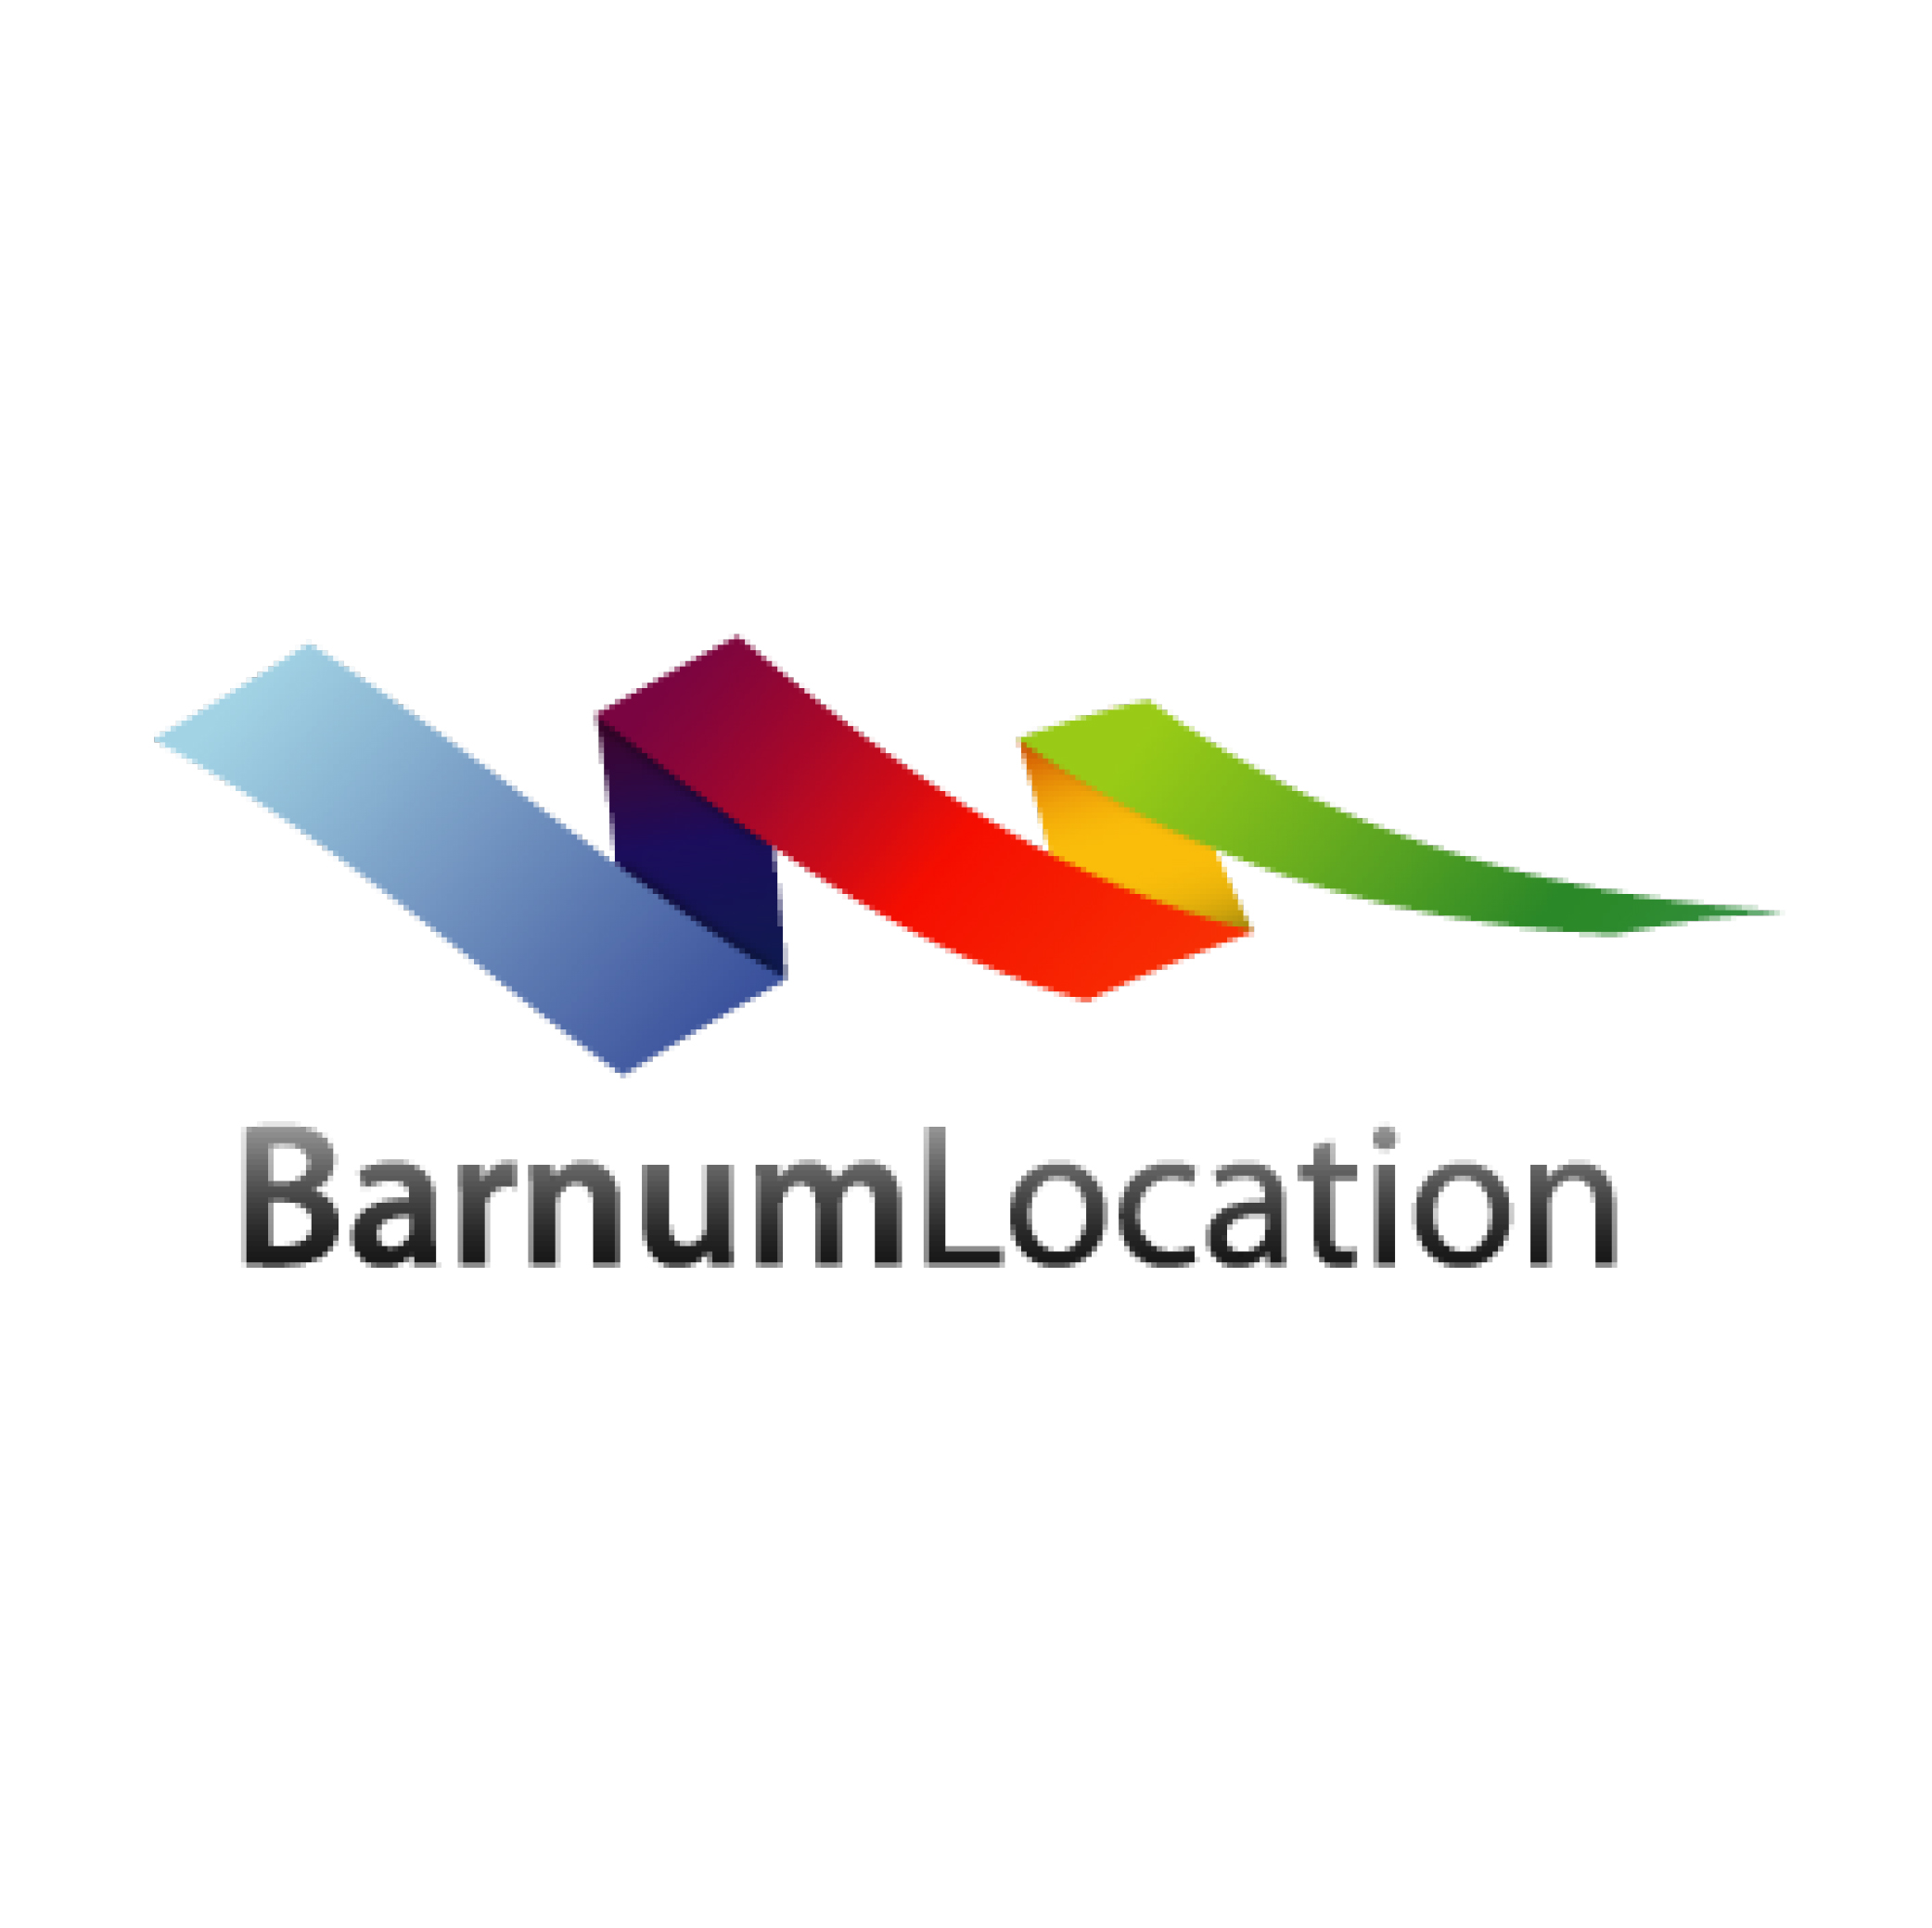 barnumlocation